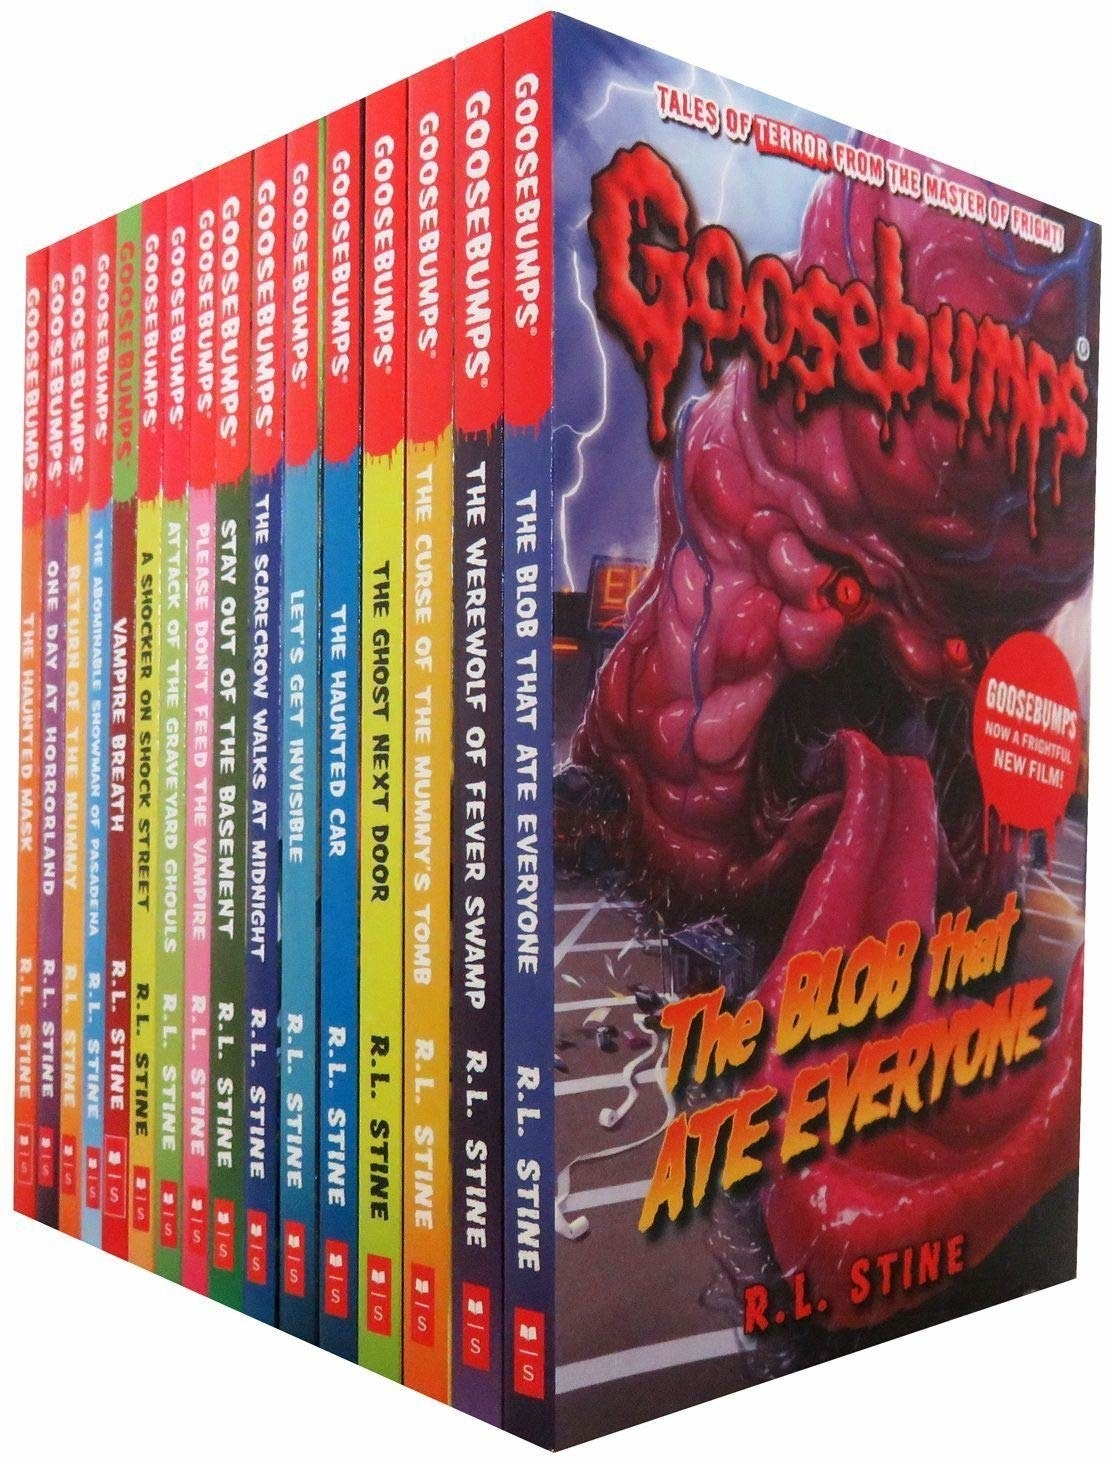 "The spines of all the books listen below, showcasing the cover of ""Goosebumps: The Blob that Ate Everyone"" by R.L. Stine with a scary illustration of a pink, veiny blob with an open mouth, long tongue, and red eyes."